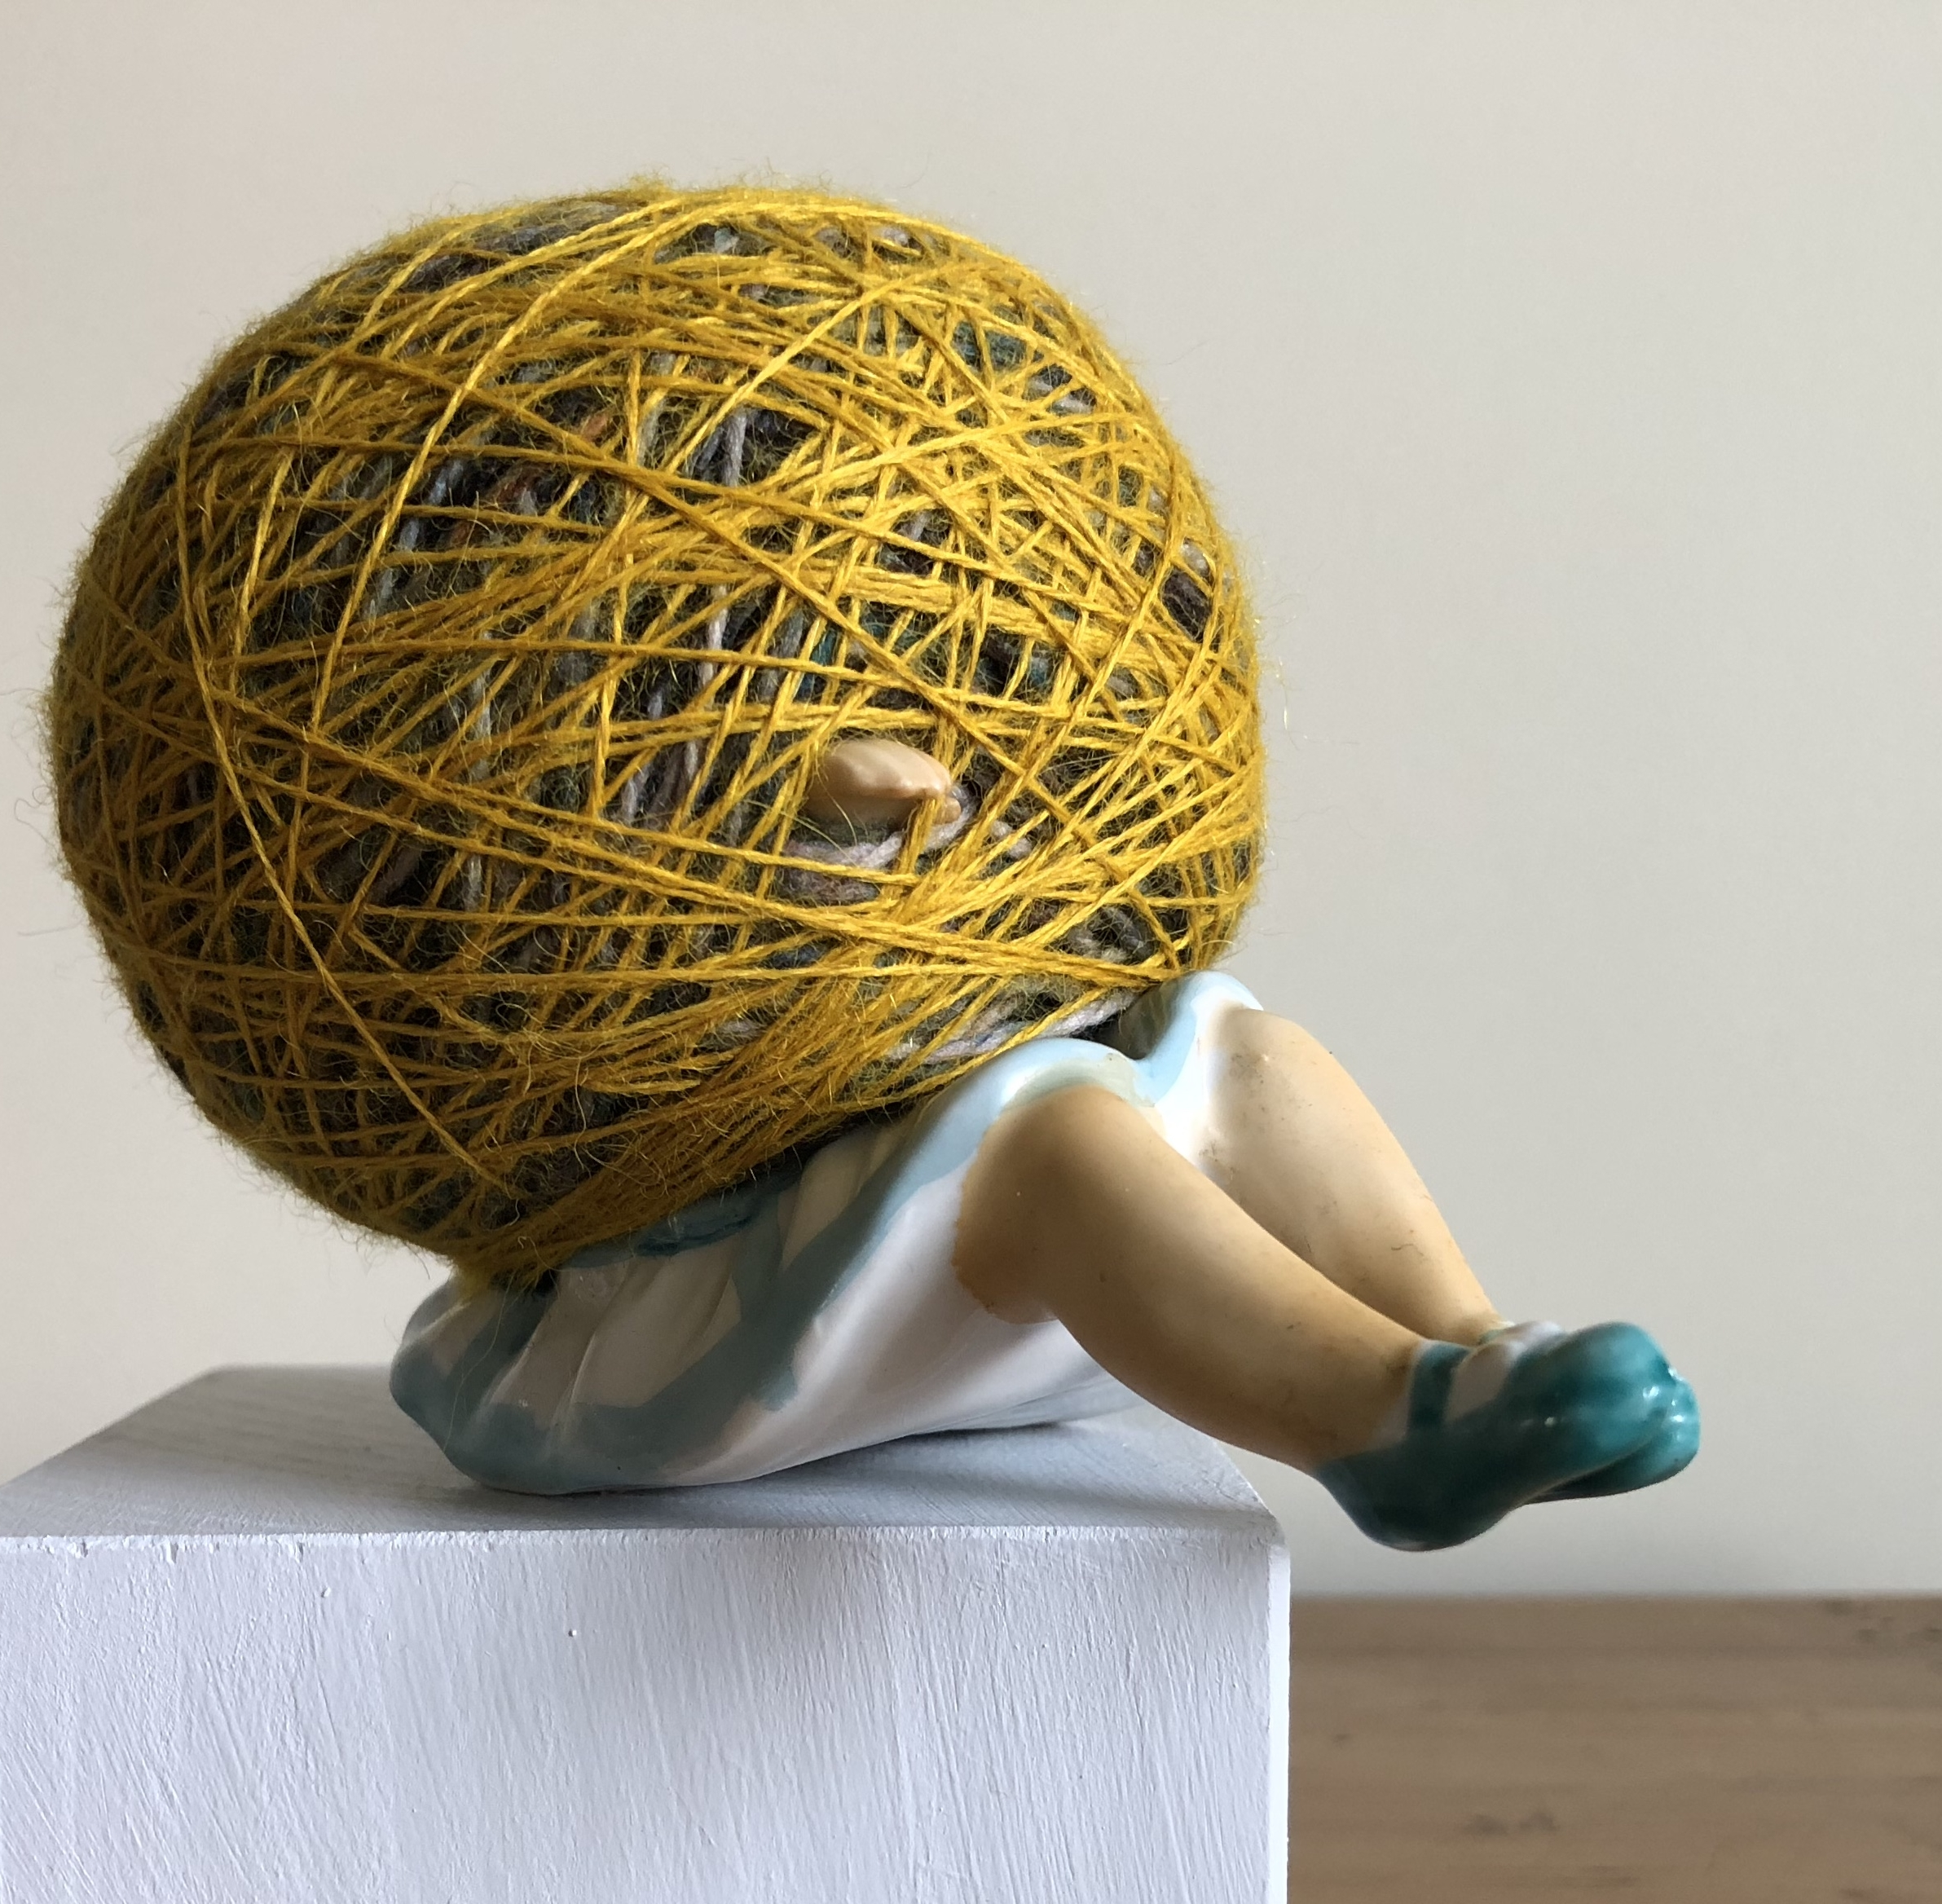 REACHING EQUILIBRIUM, 4x5x3.25 in., found ceramic figurine, wool, linen and cotton threads - 2018